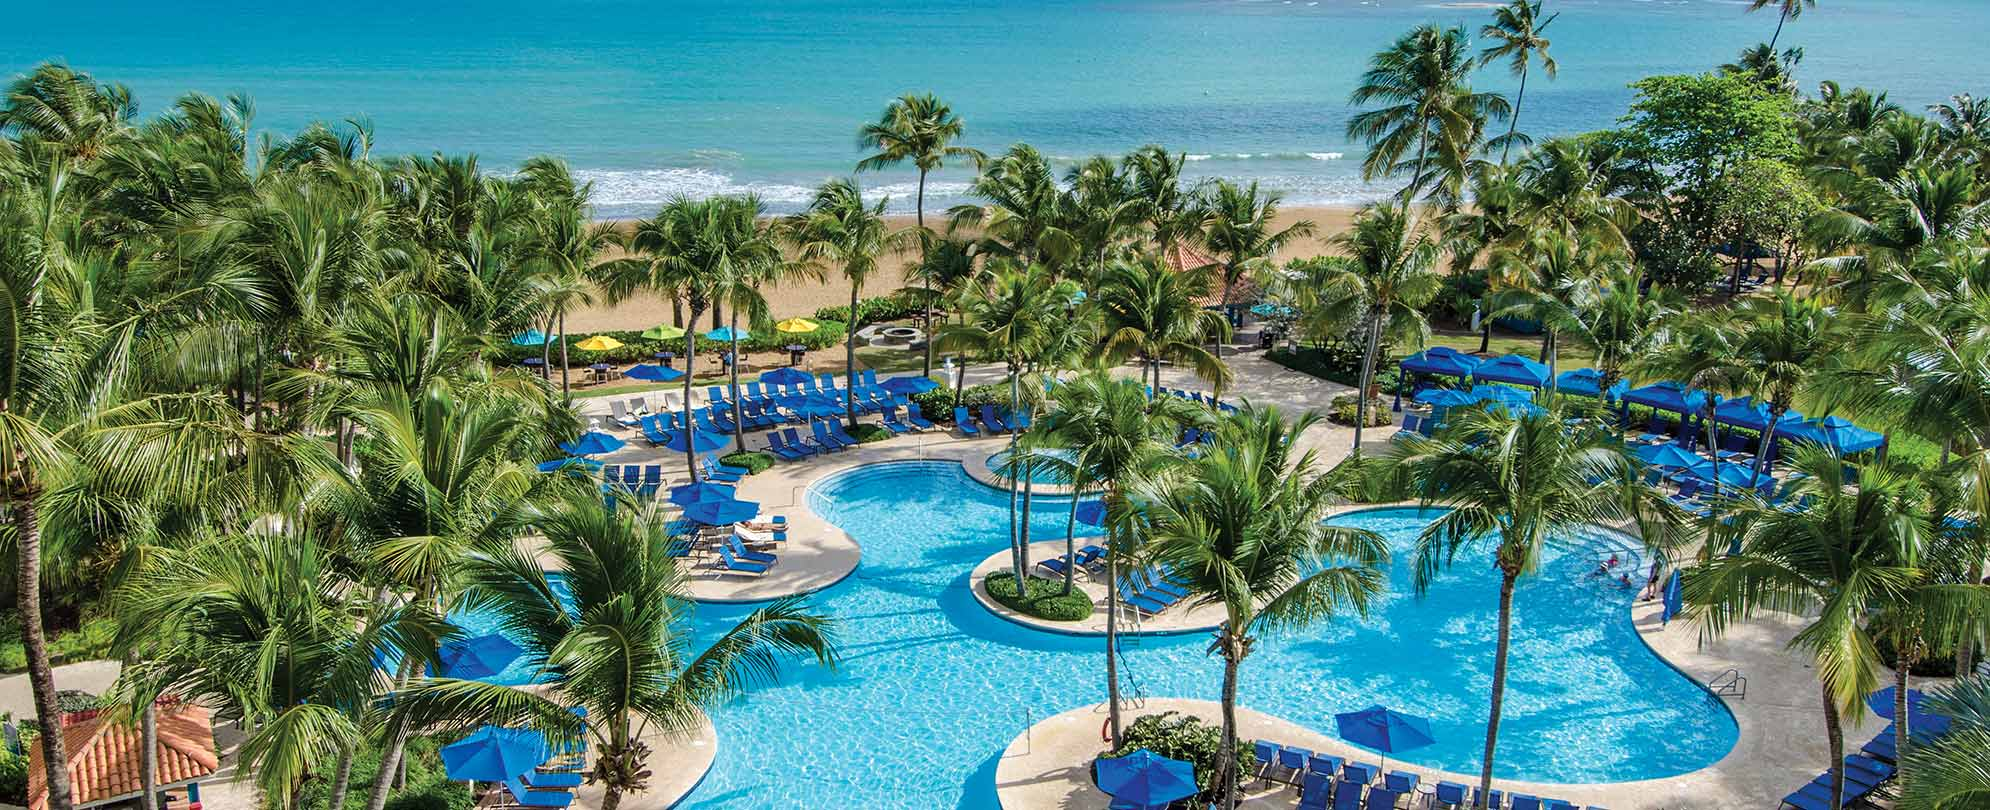 An oceanfront pool surrounded by palm trees at Margaritaville Vacation Club by Wyndham - Rio Mar, a timeshare resort.